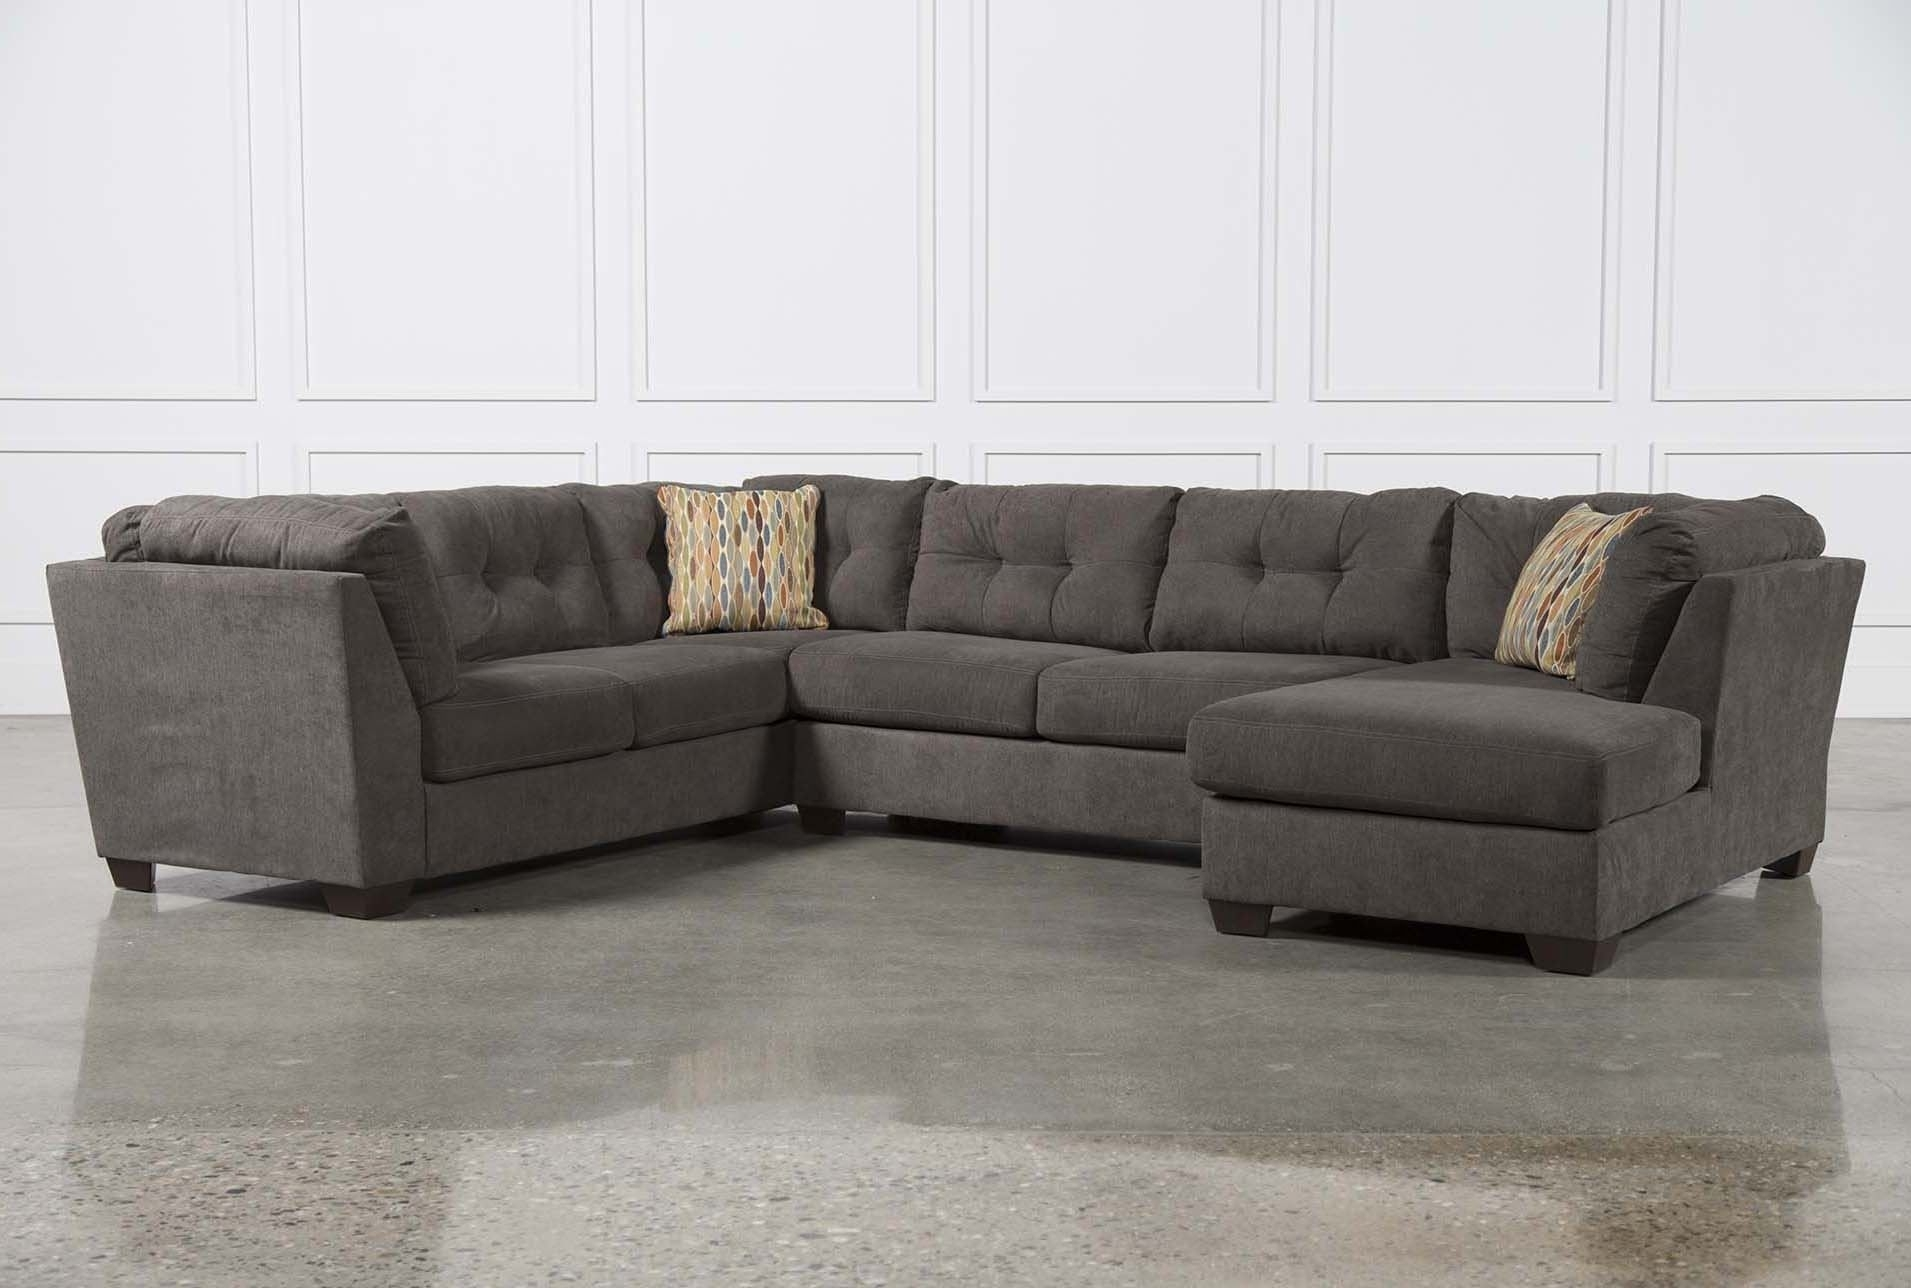 Delta City Steel 3 Piece Sectional W/raf Chaise – Living Spaces Inside Meyer 3 Piece Sectionals With Raf Chaise (Image 8 of 25)